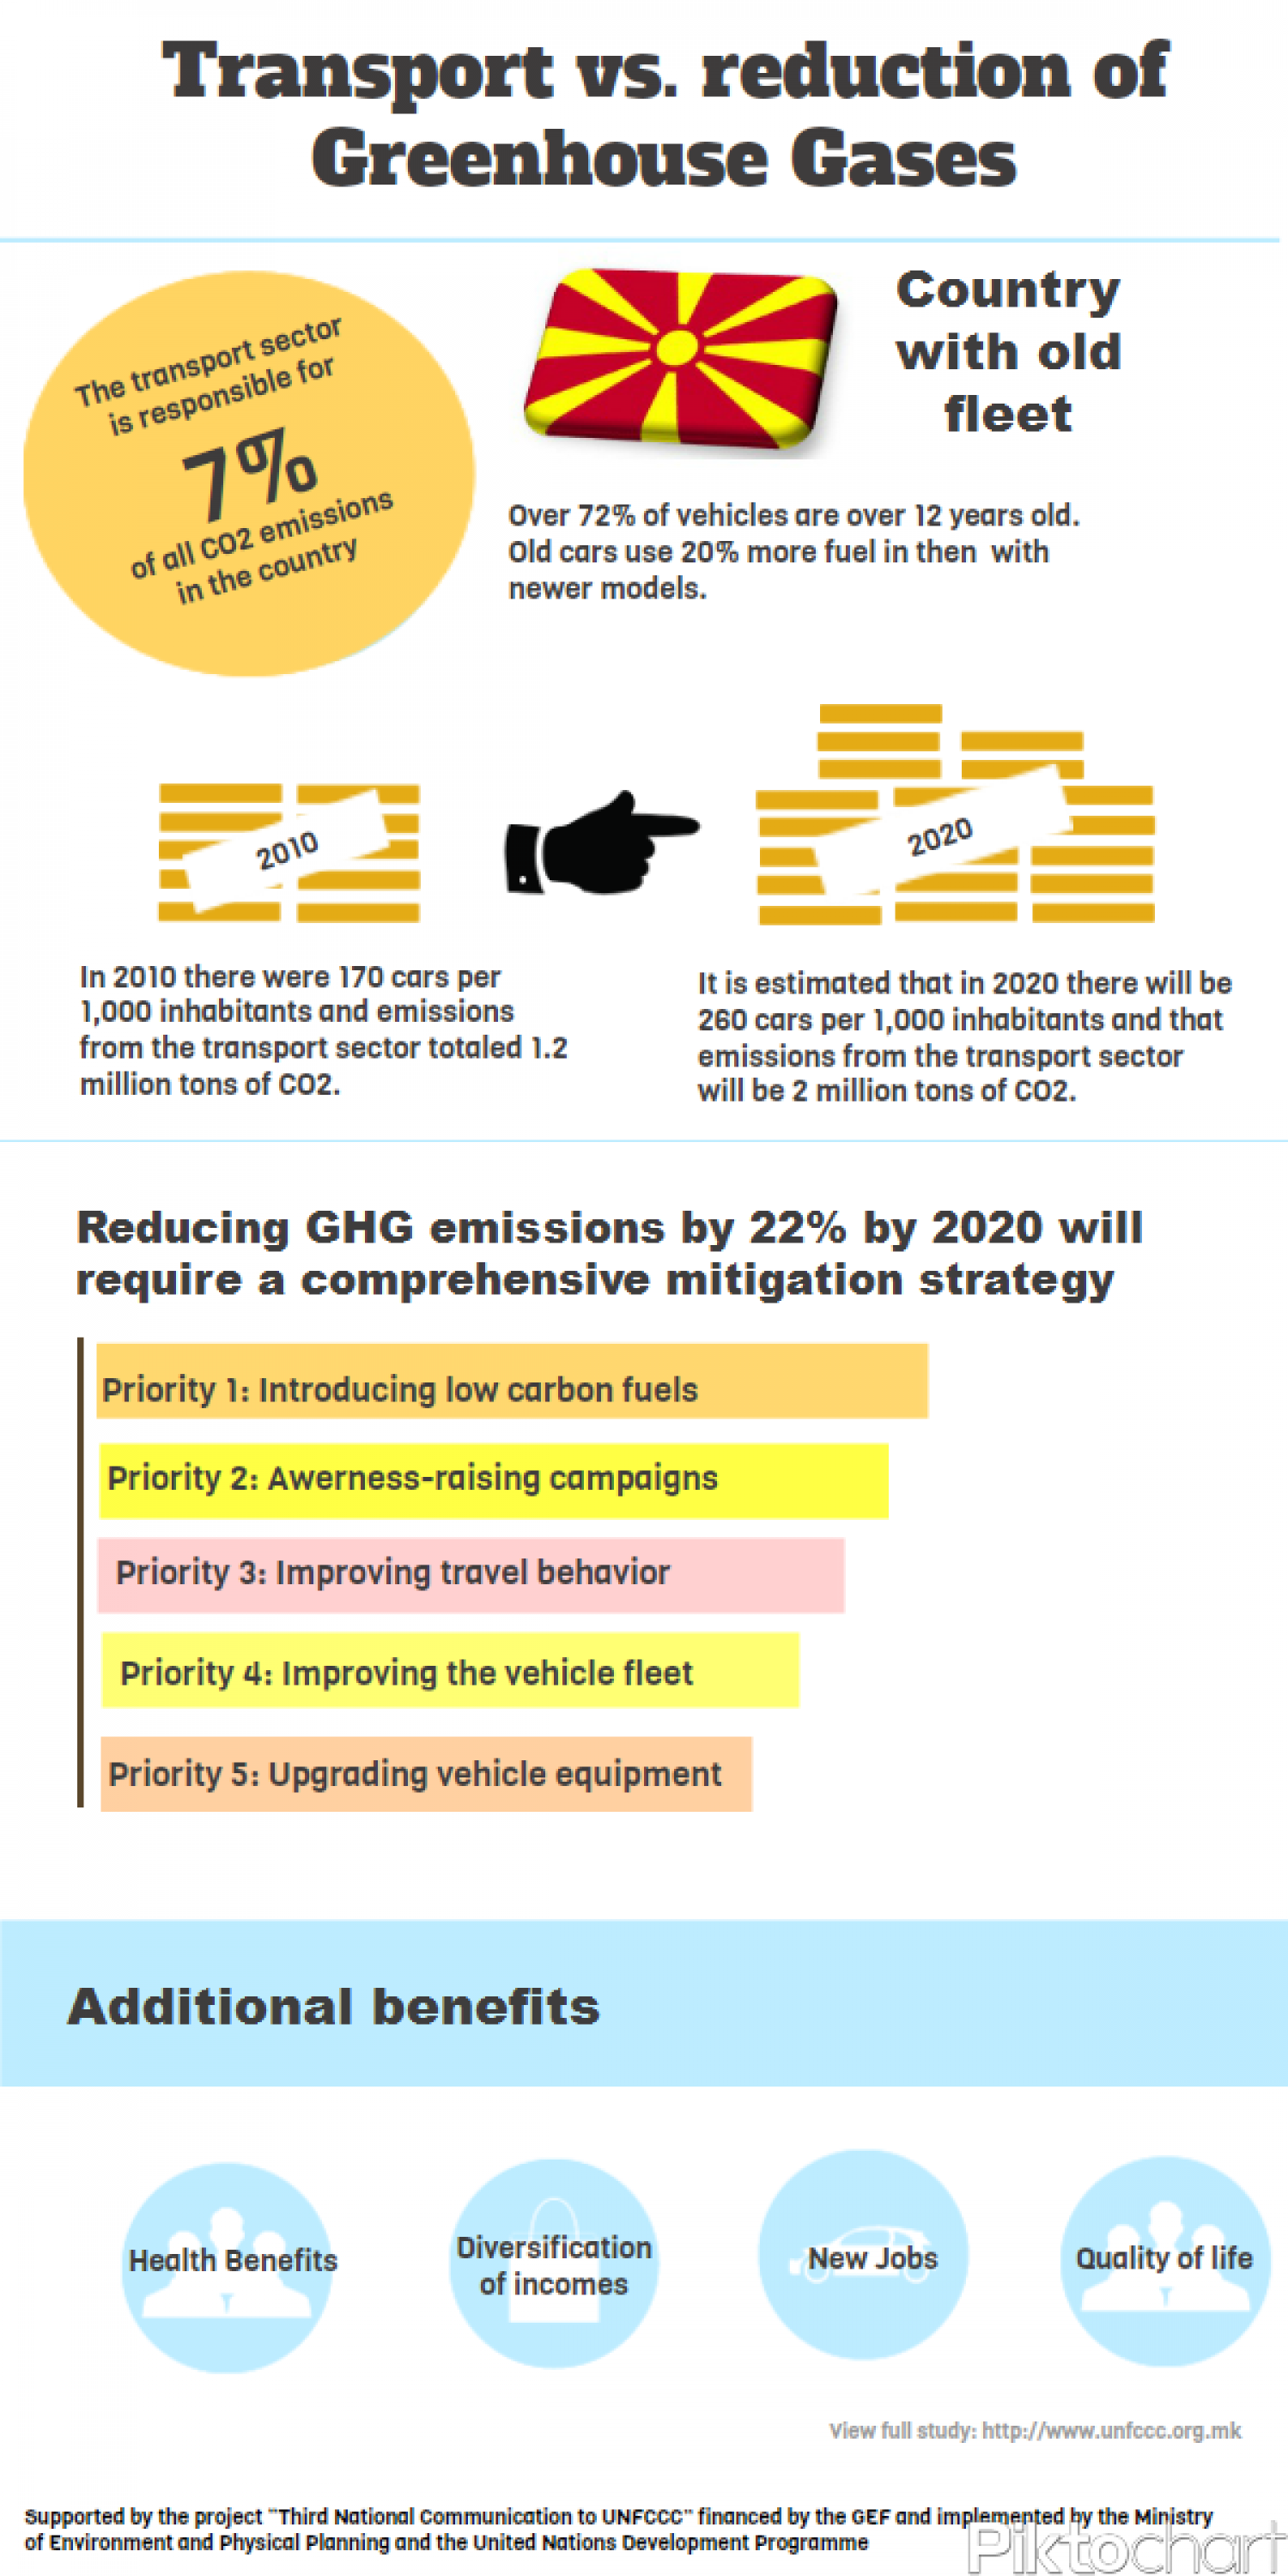 Transport vs. reduction of Greenhouse Gases Infographic